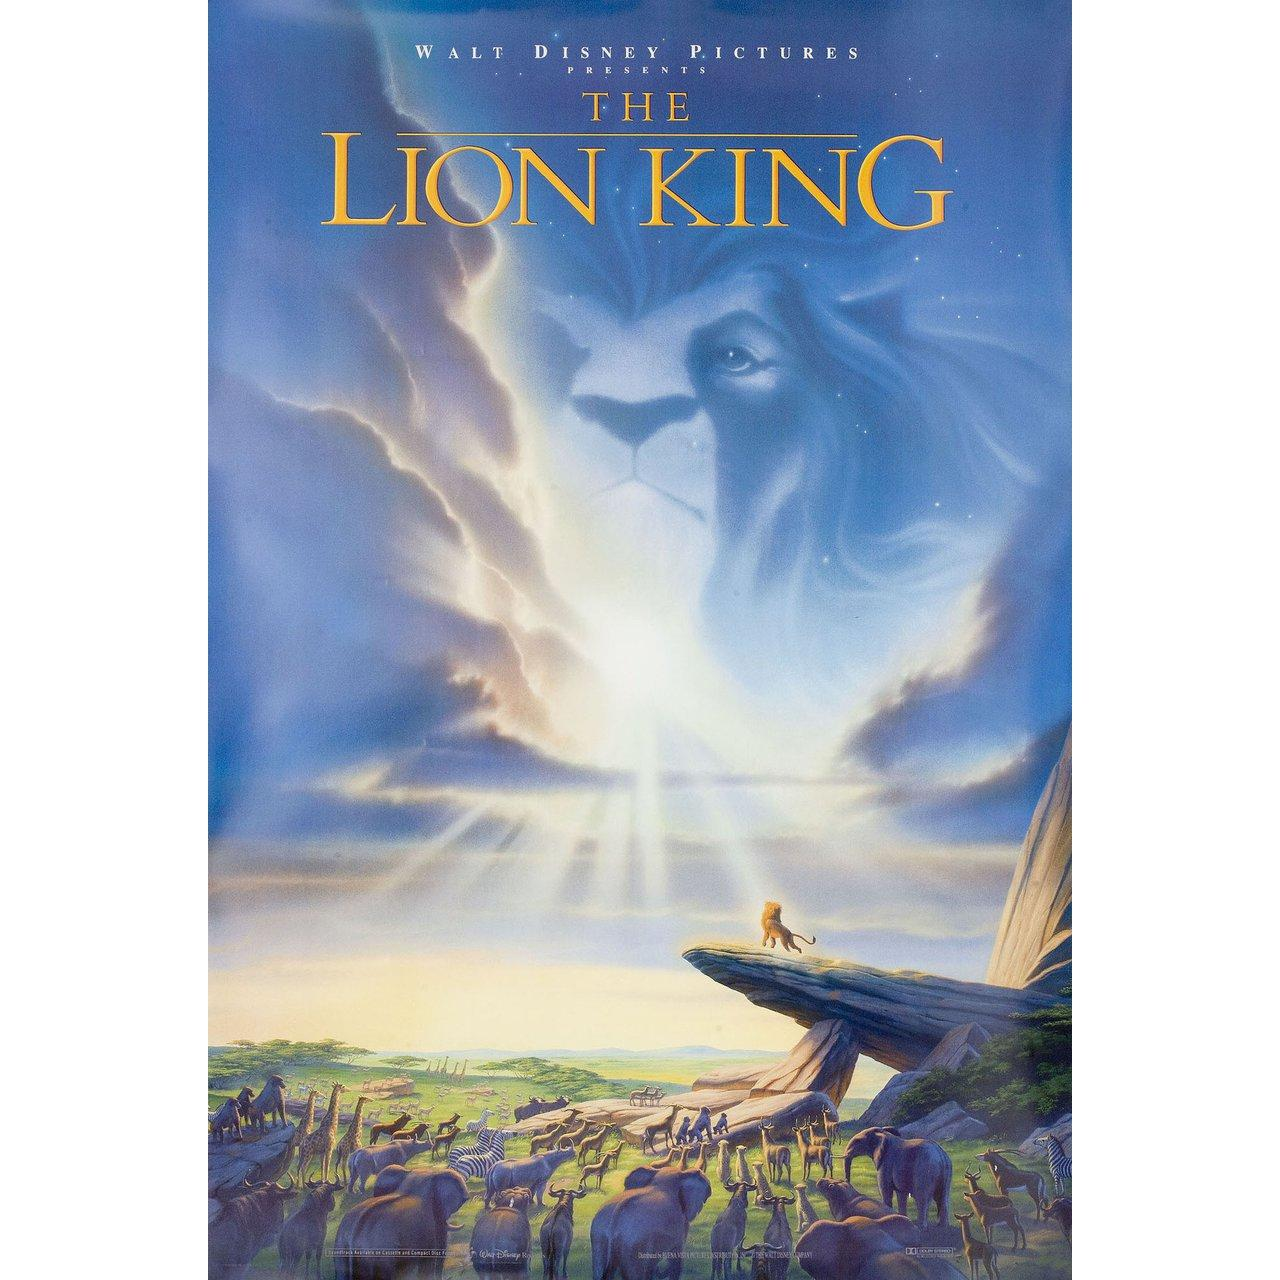 The Lion King 1994 U S One Sheet Film Poster For Sale At 1stdibs